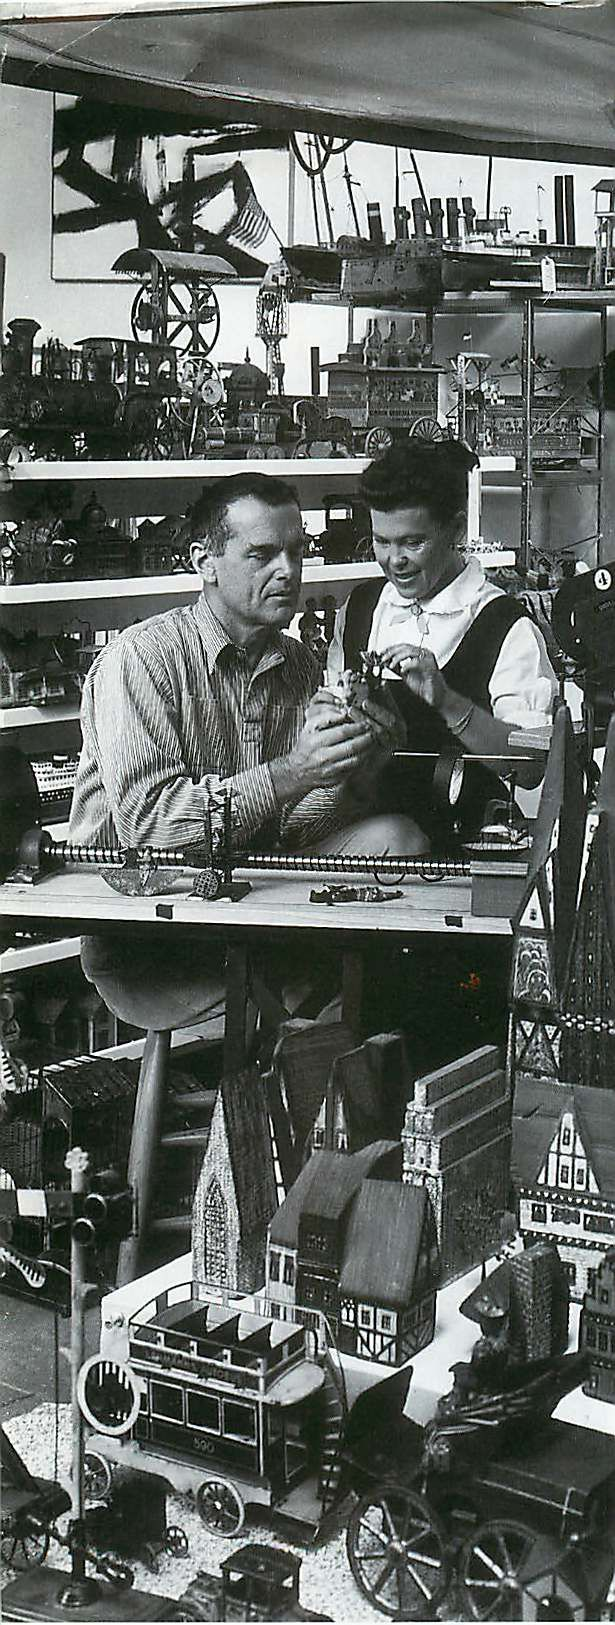 charles and ray eames at work on toccata for toy trains. Black Bedroom Furniture Sets. Home Design Ideas